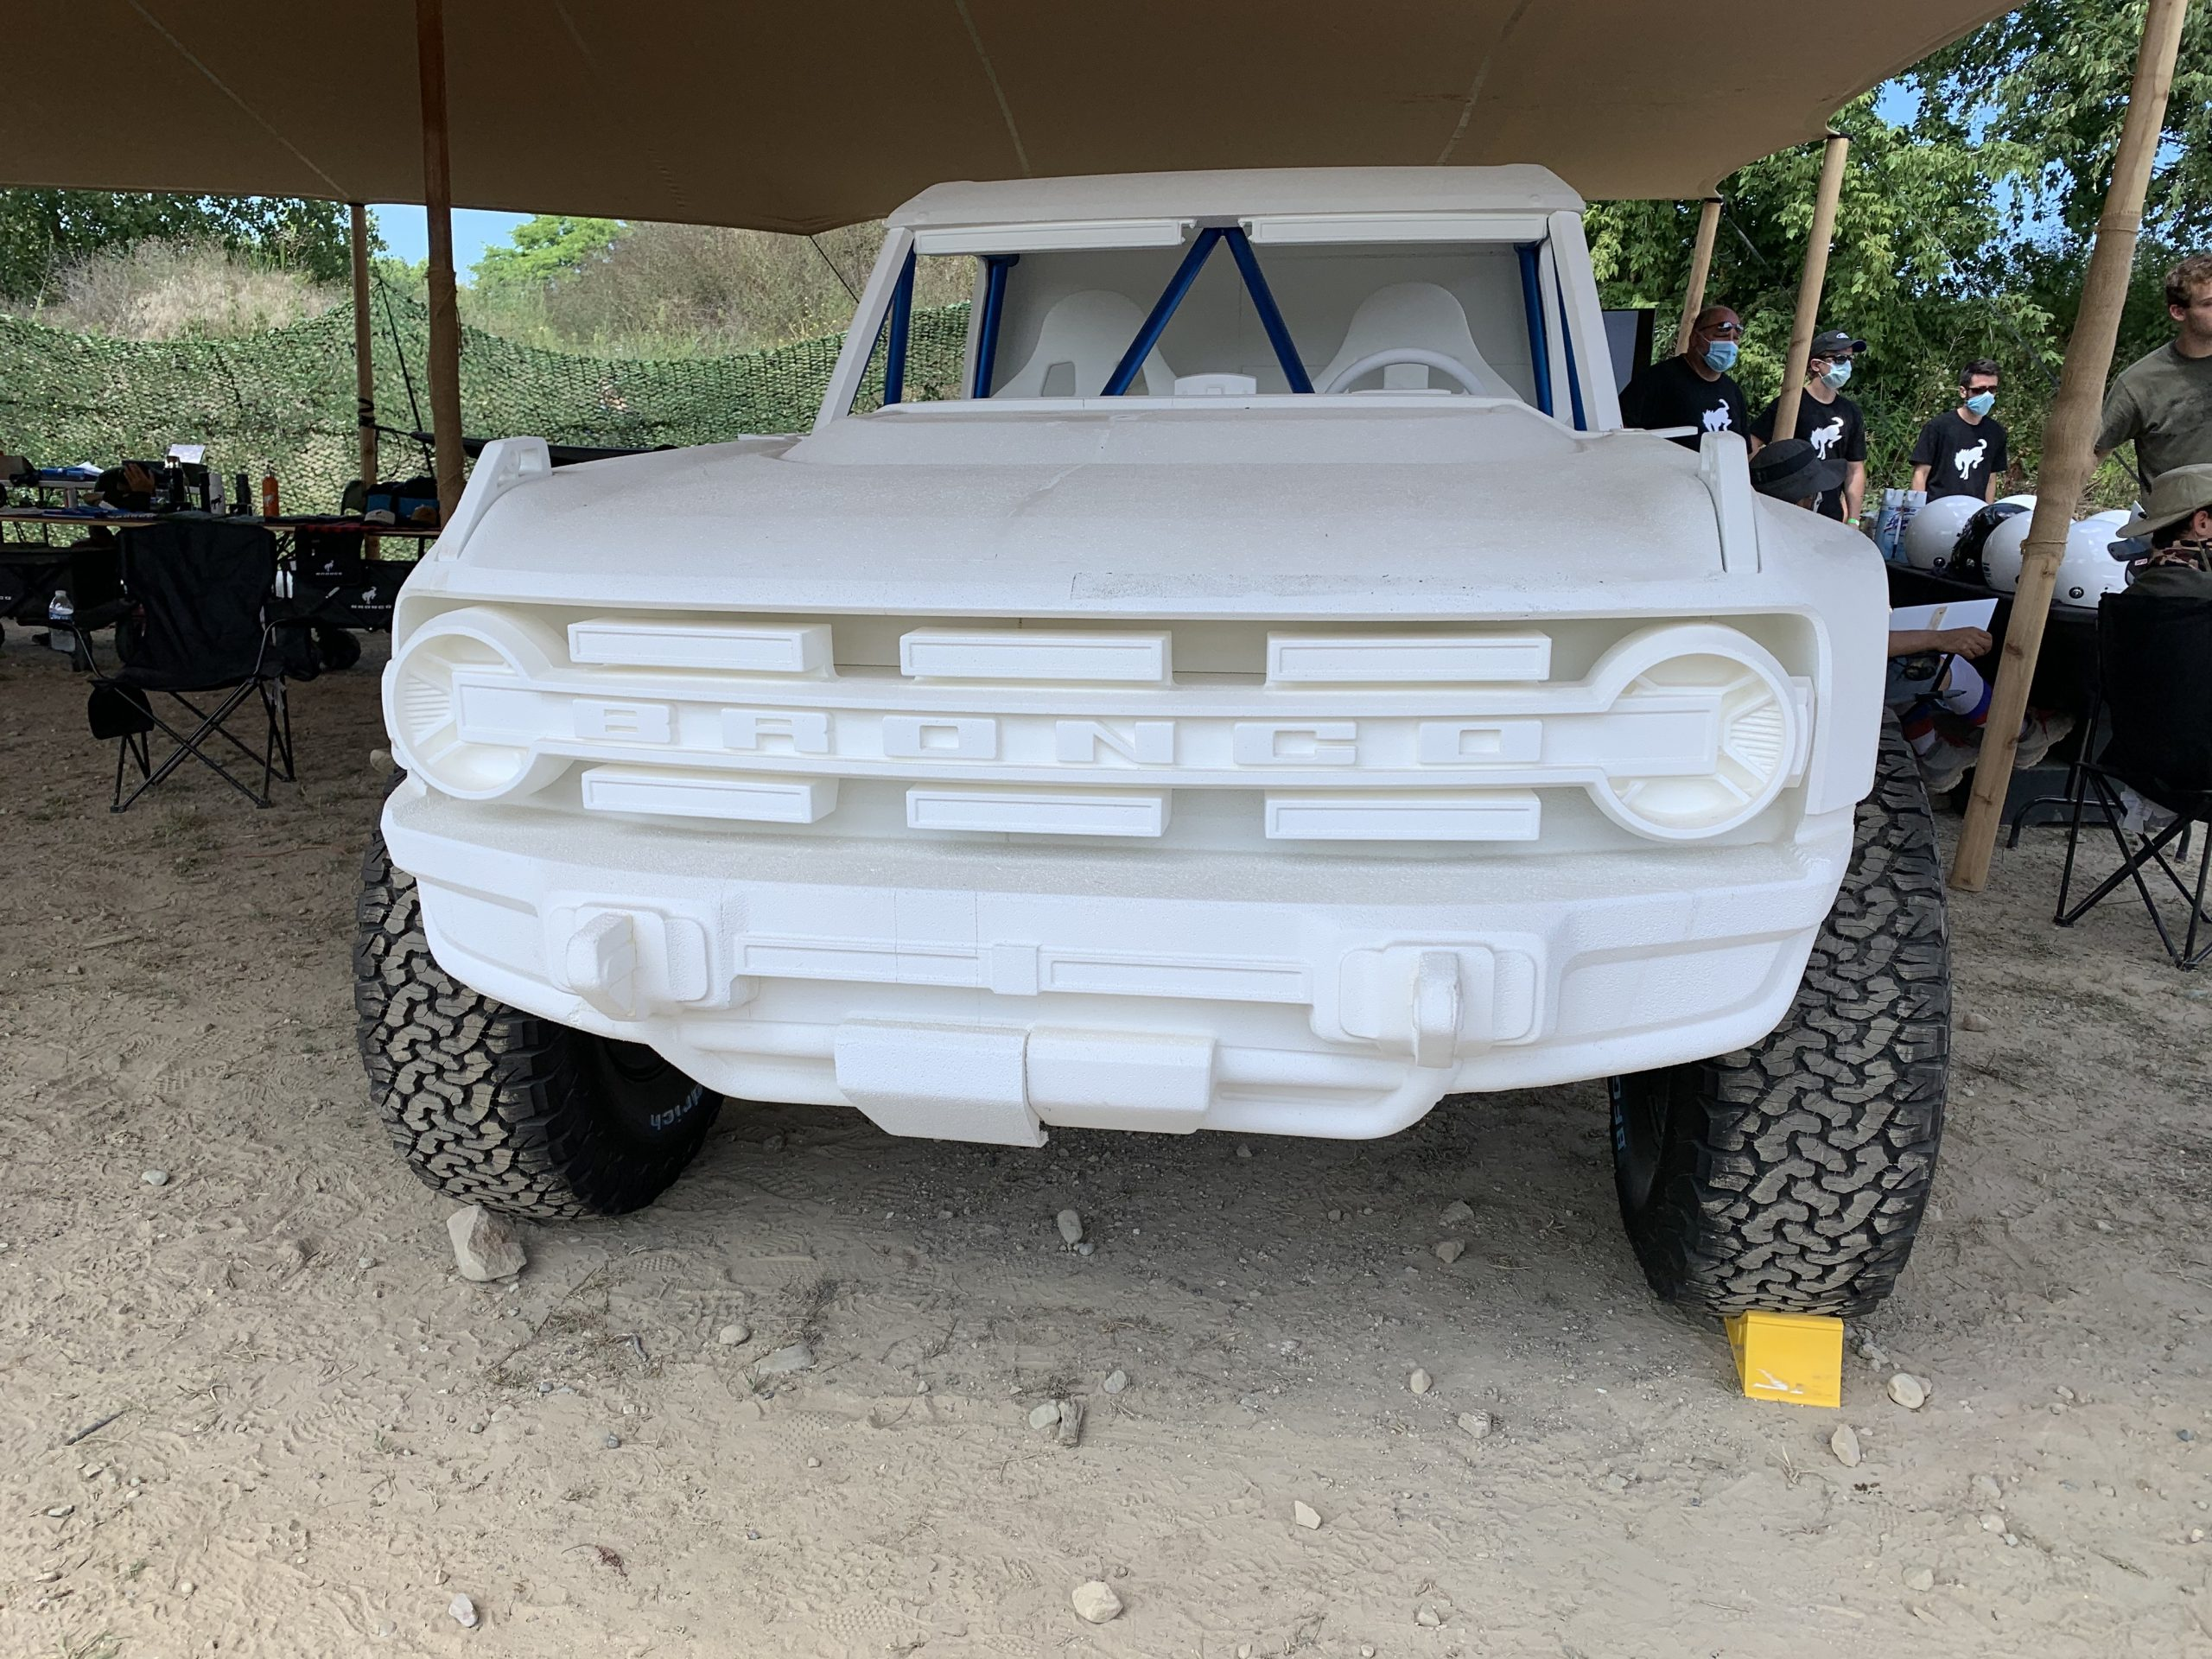 Bronco R styrofoam mock up model